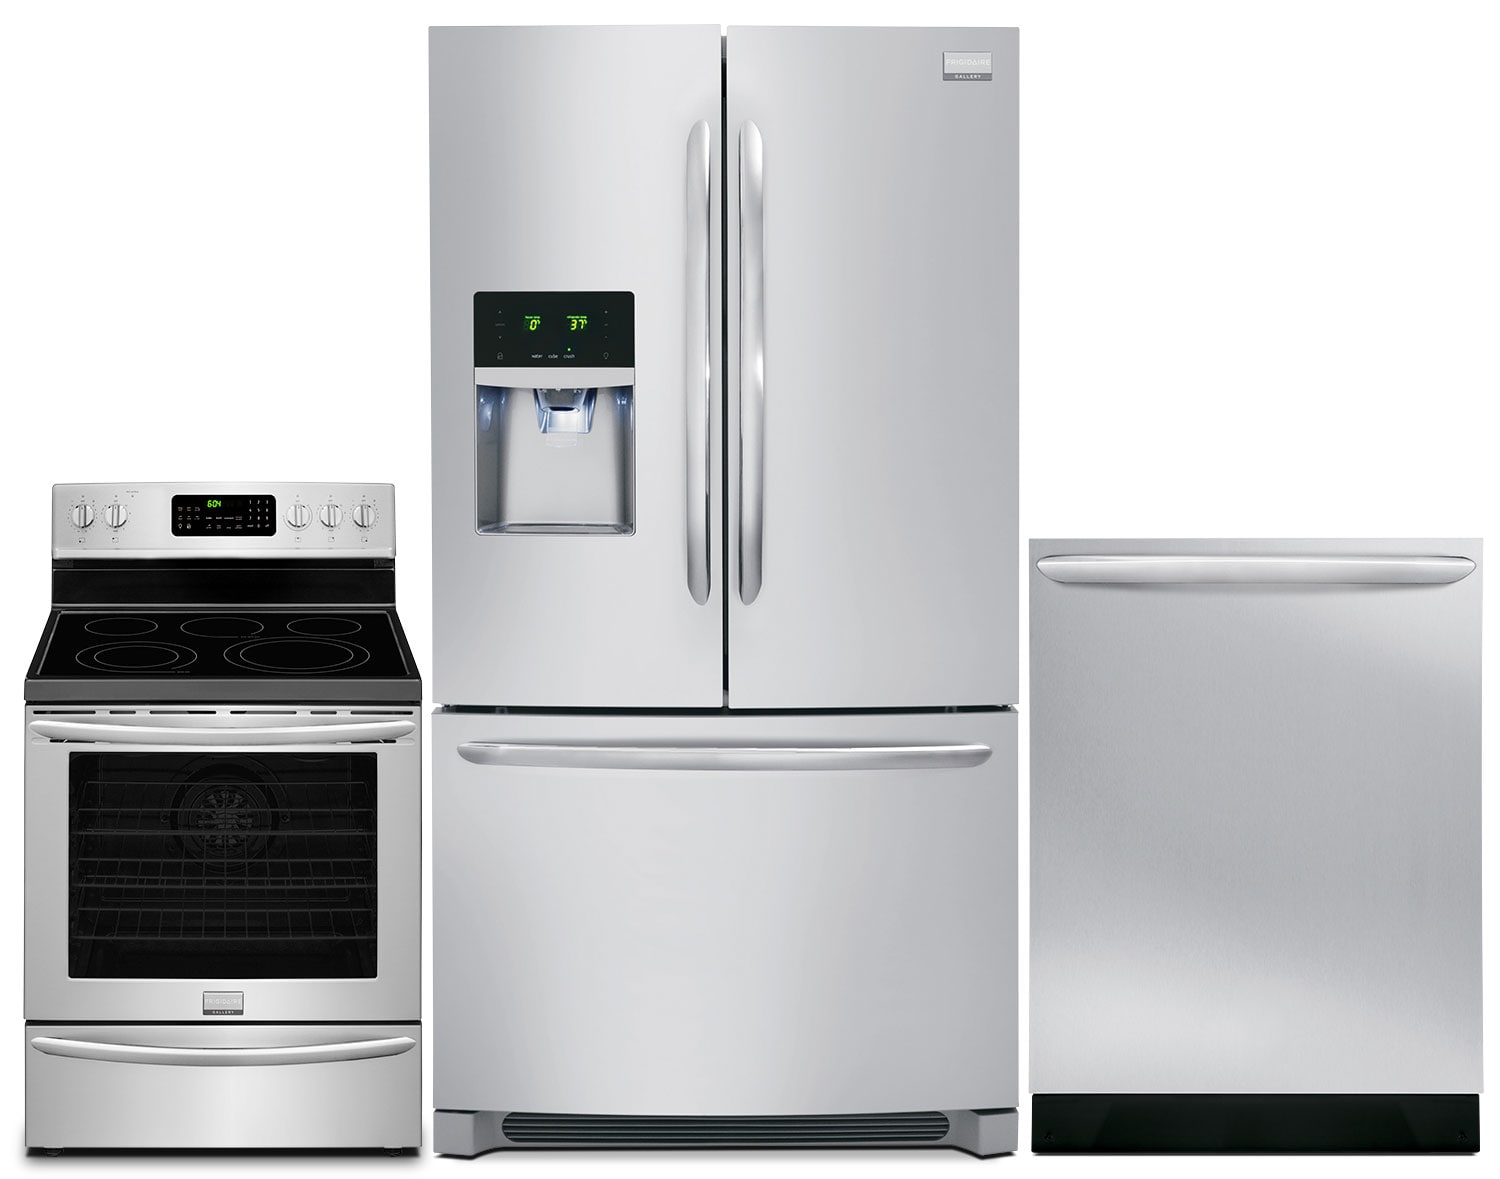 Frigidaire Gallery 28 Cu. Ft. Refrigerator, 5.8 Cu. Ft. Range and Dishwasher – Stainless Steel